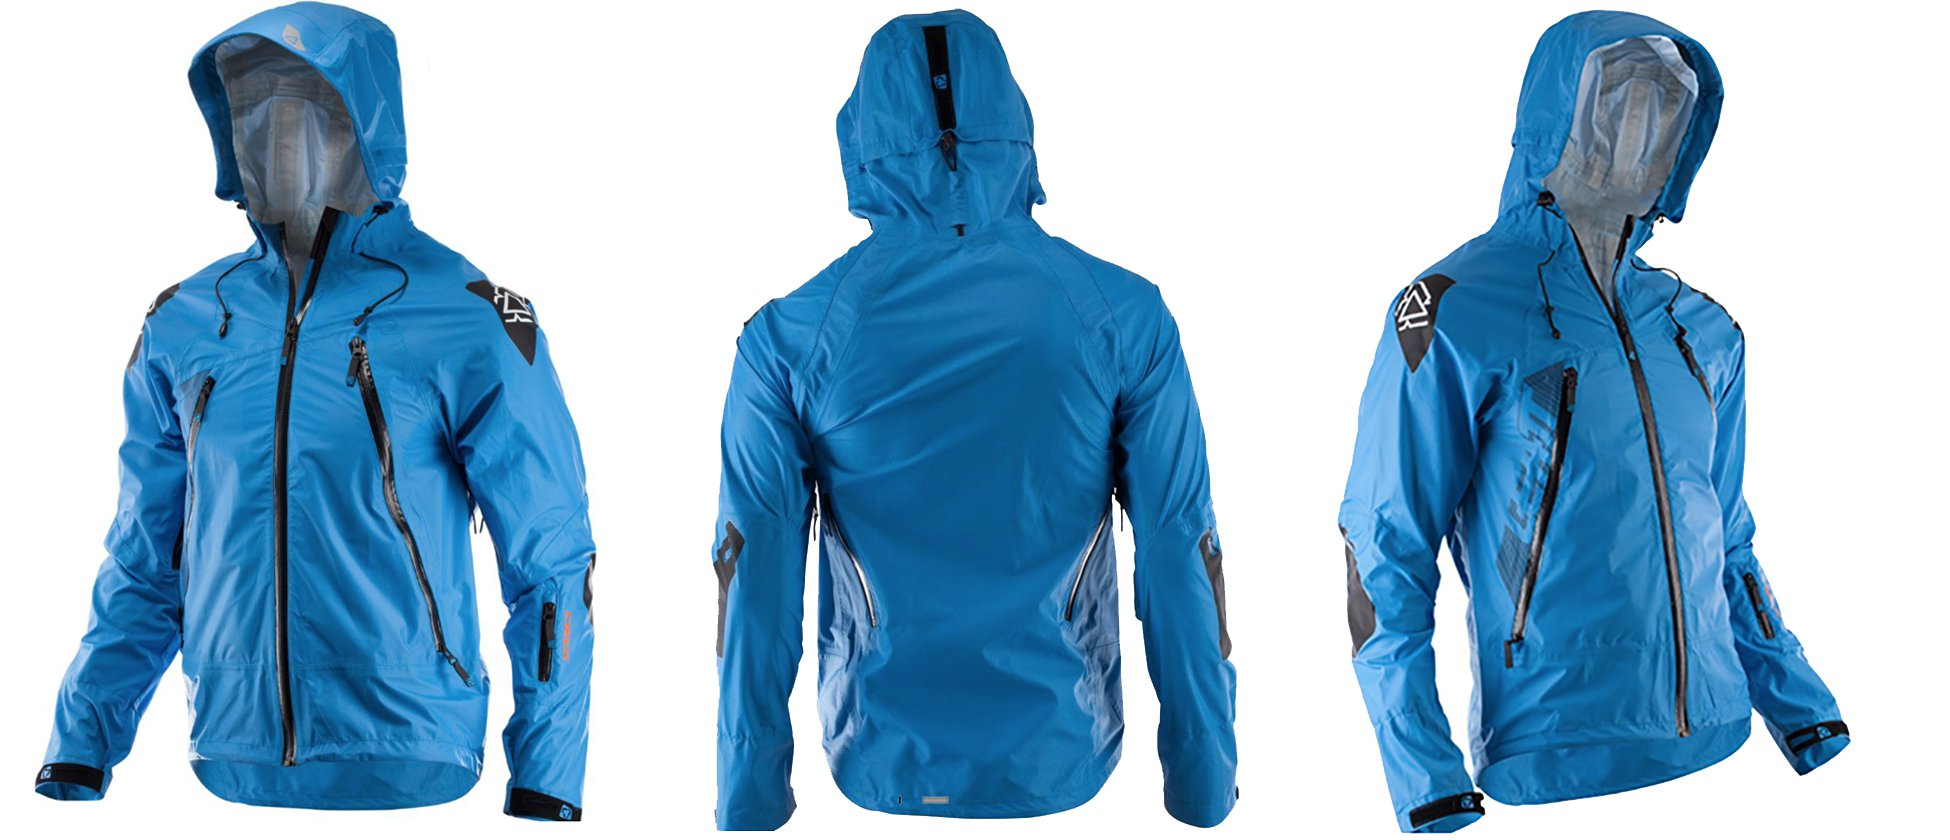 Leatt DBX 5.0 Waterproof Jacket and Shorts